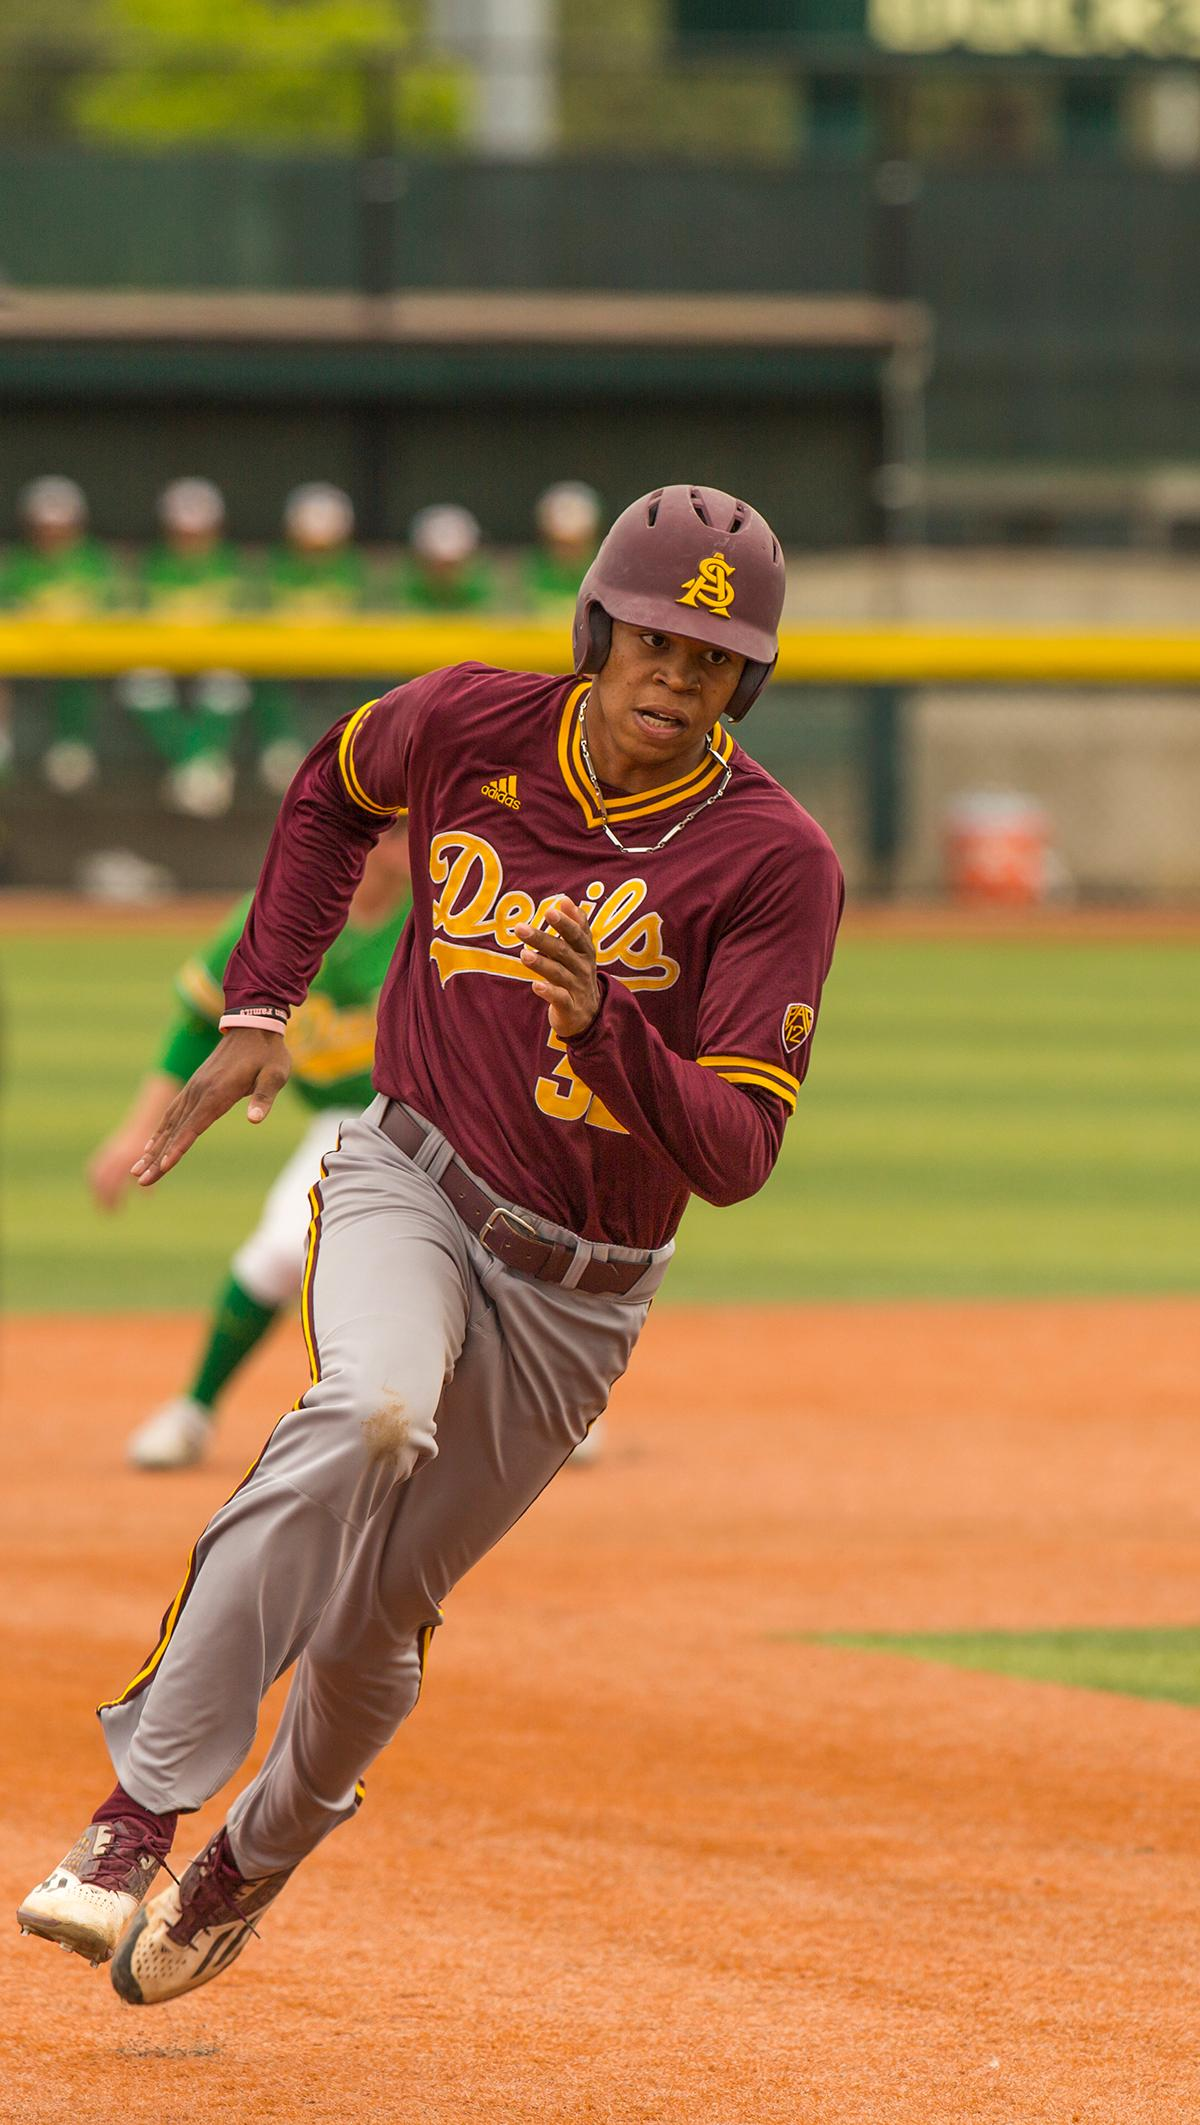 Sun Devils Garvin Alston Jr.(#32) dashes for third base. Despite a late comeback, the Ducks fall to Arizona State Sun Devils 4-3 in the second game of a three-game series. Photo by James Wegter, Oregon News Lab